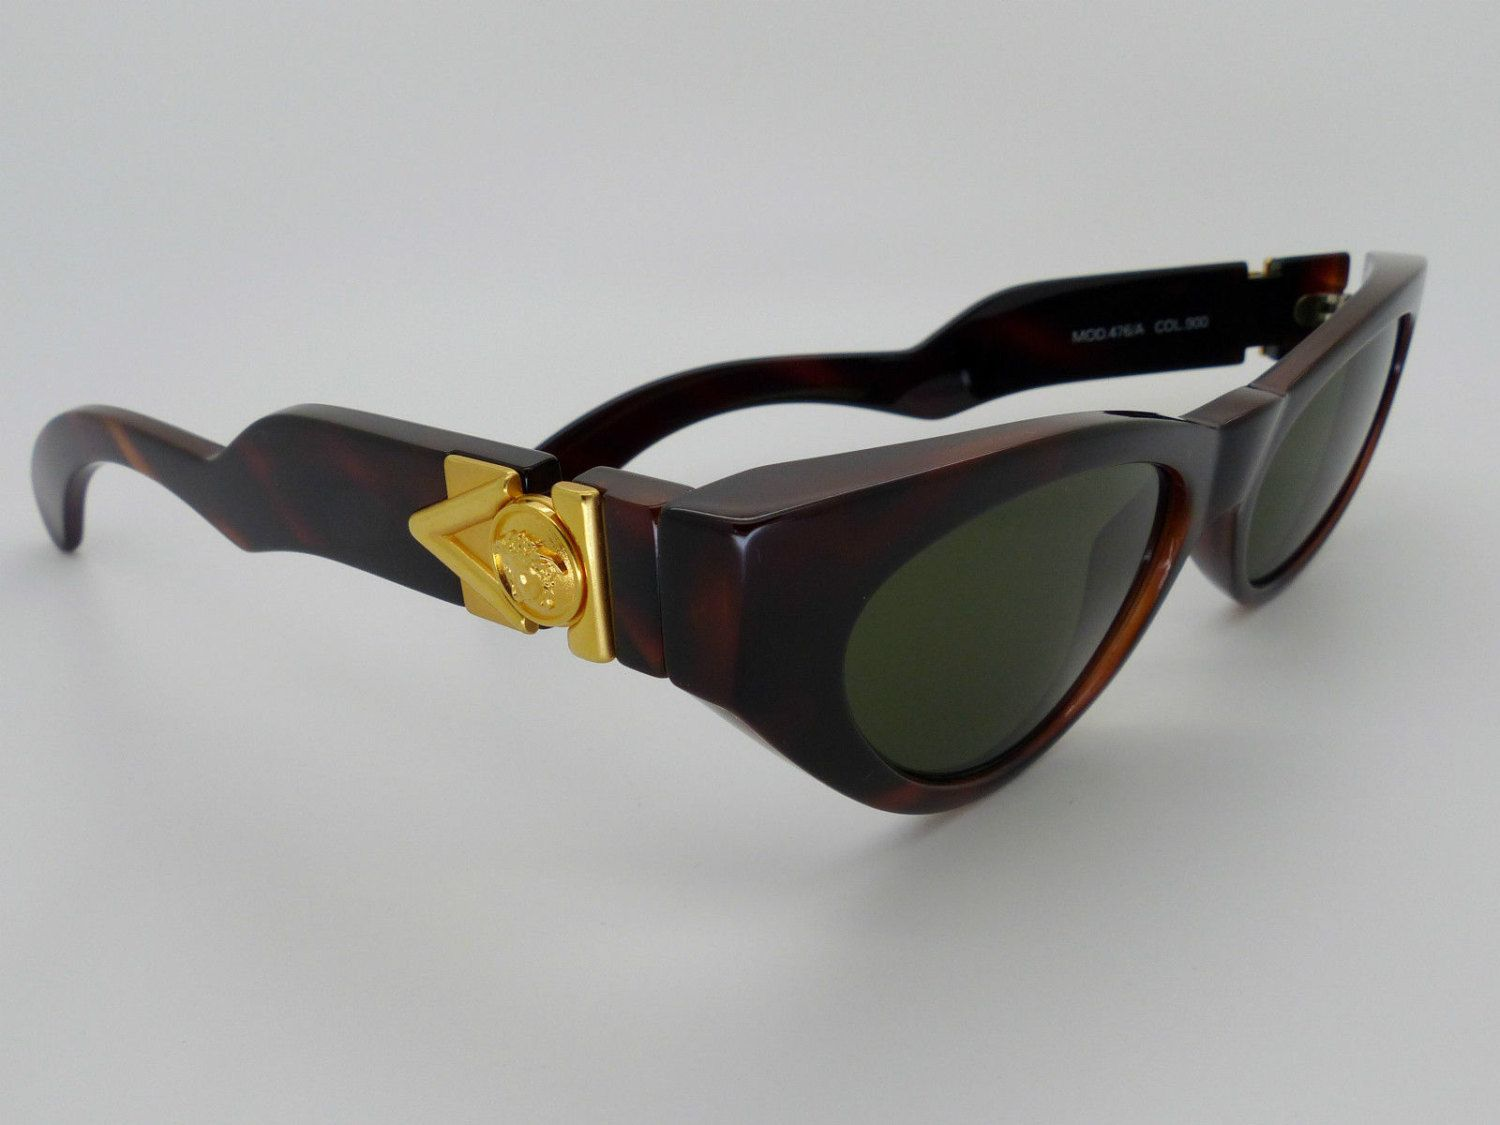 5e57679931 Genuine Rare Vintage Gianni Versace Sunglasses Mod 476 A Col 900 by VSOx on  Etsy